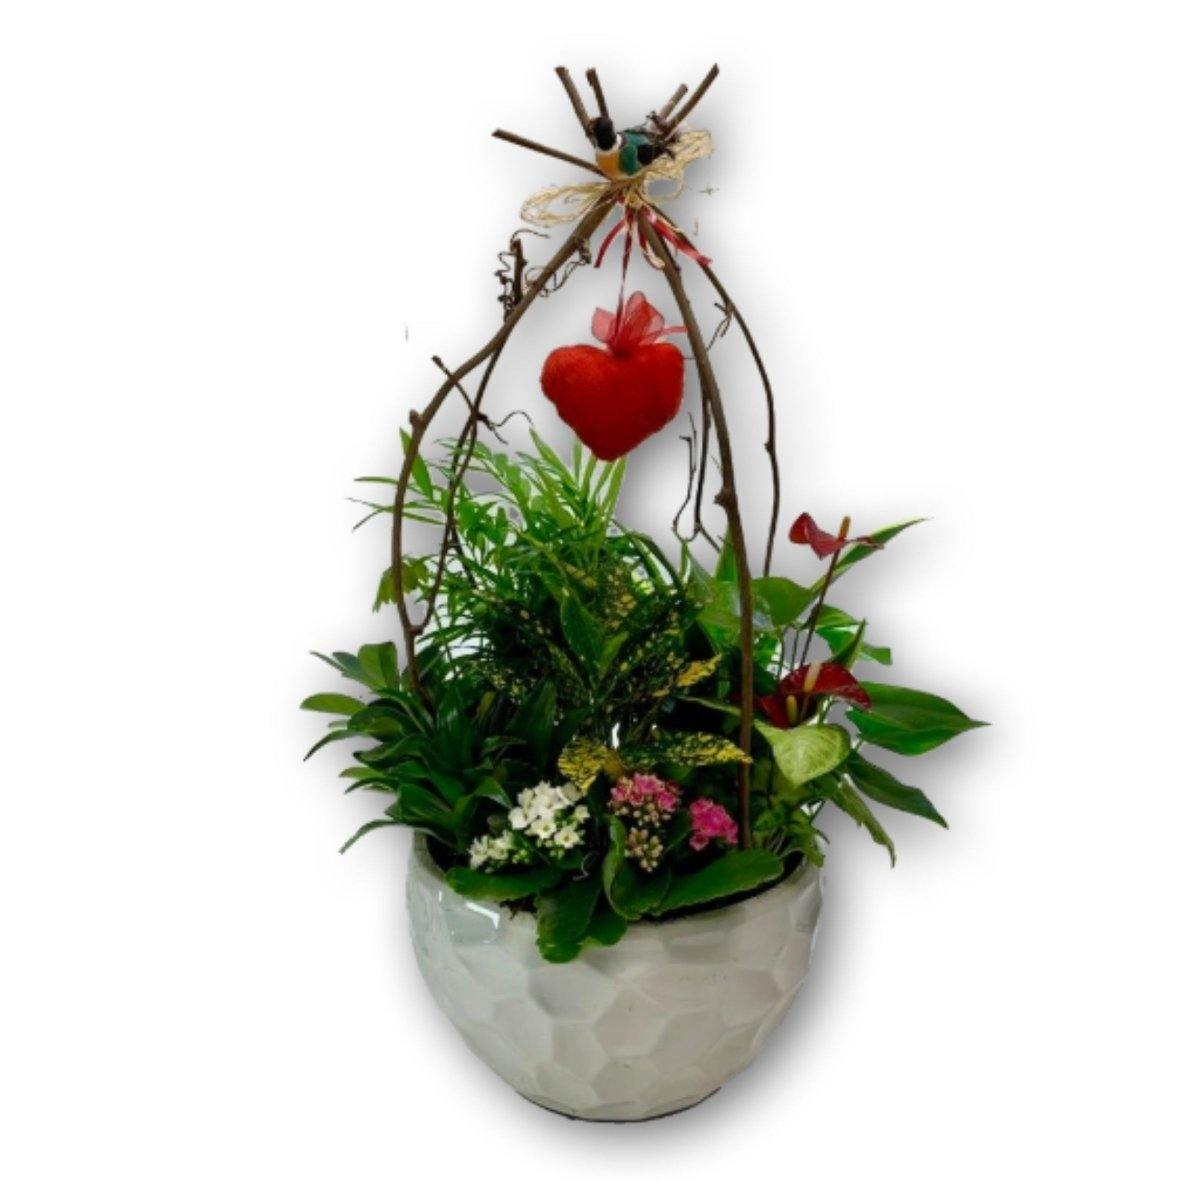 'You Have my Heart' Planter - Shalimar Flower Shop